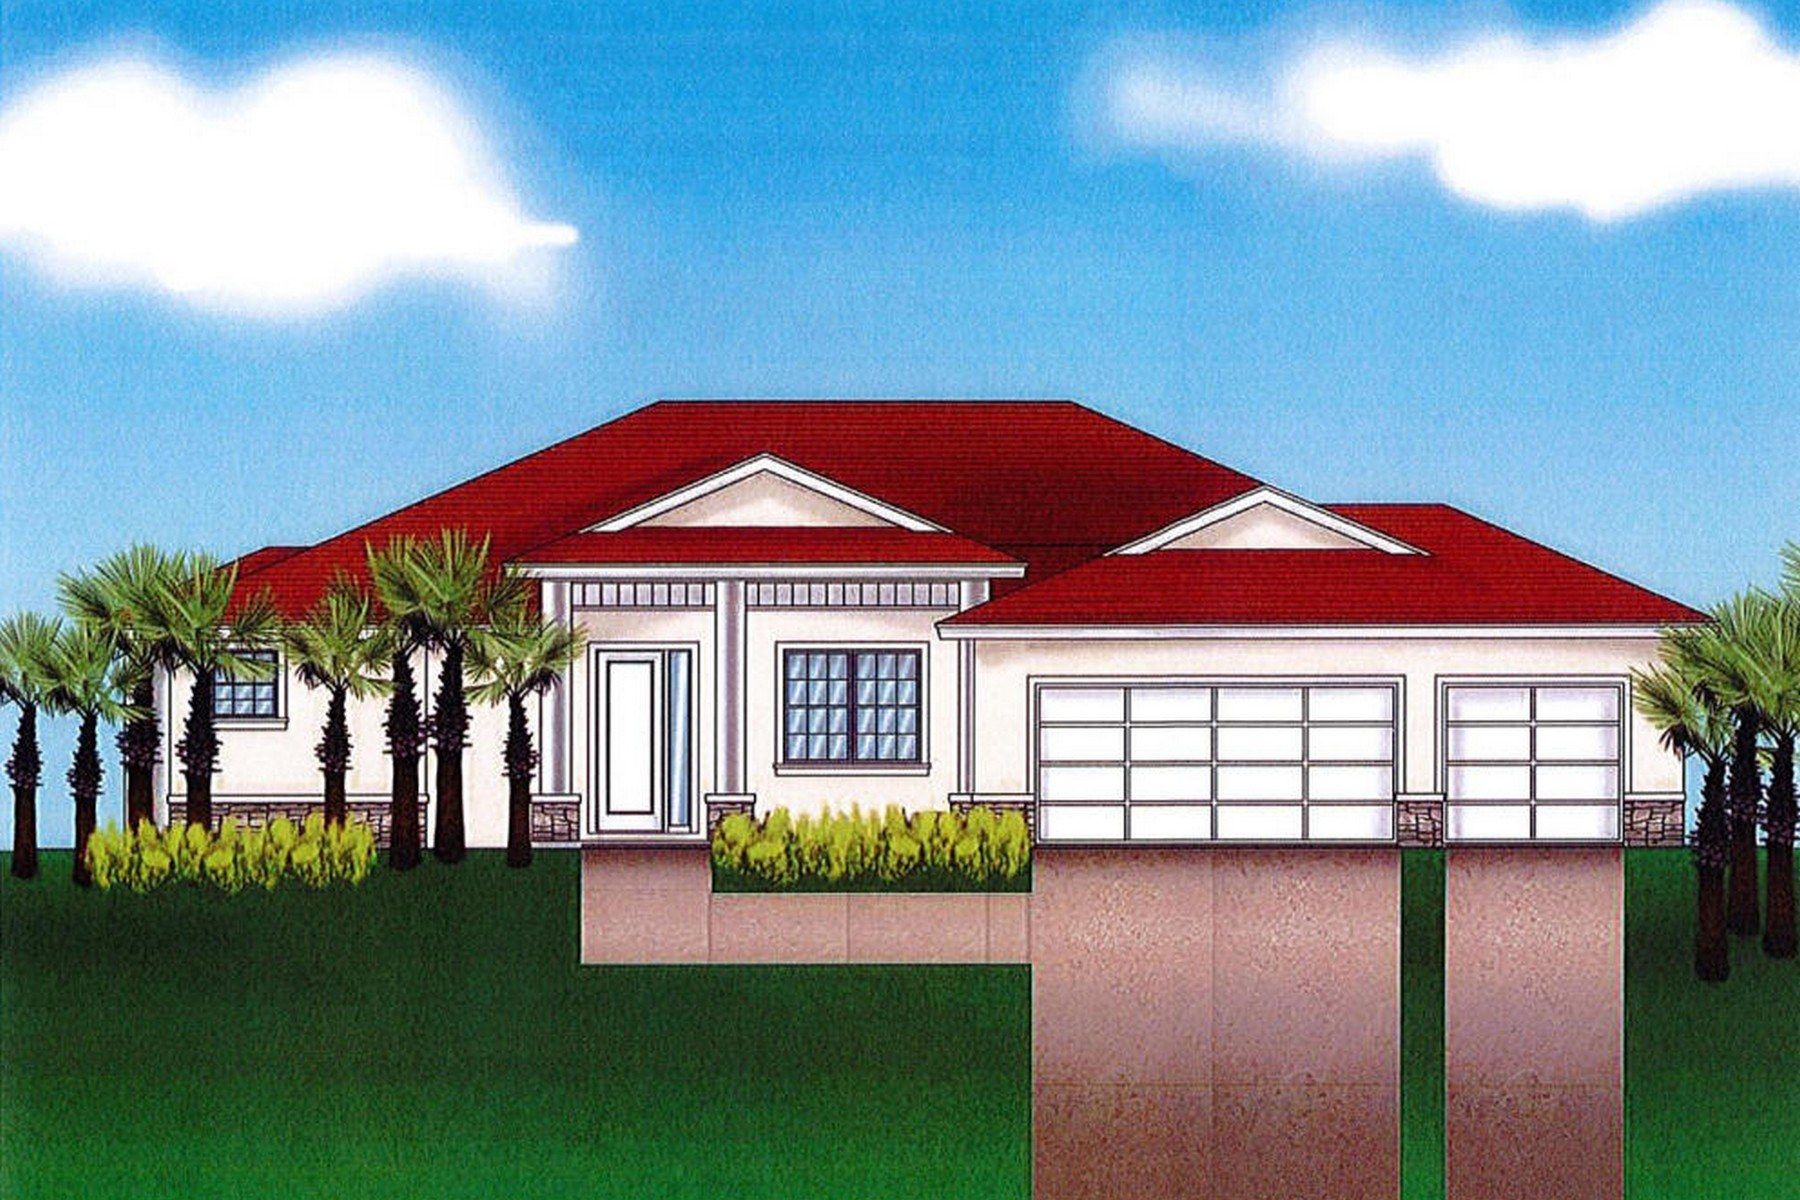 Single Family Homes for Sale at To-Be-Built Property Nestled Within Riverside Landing 317 Island Drive Melbourne Beach, Florida 32951 United States